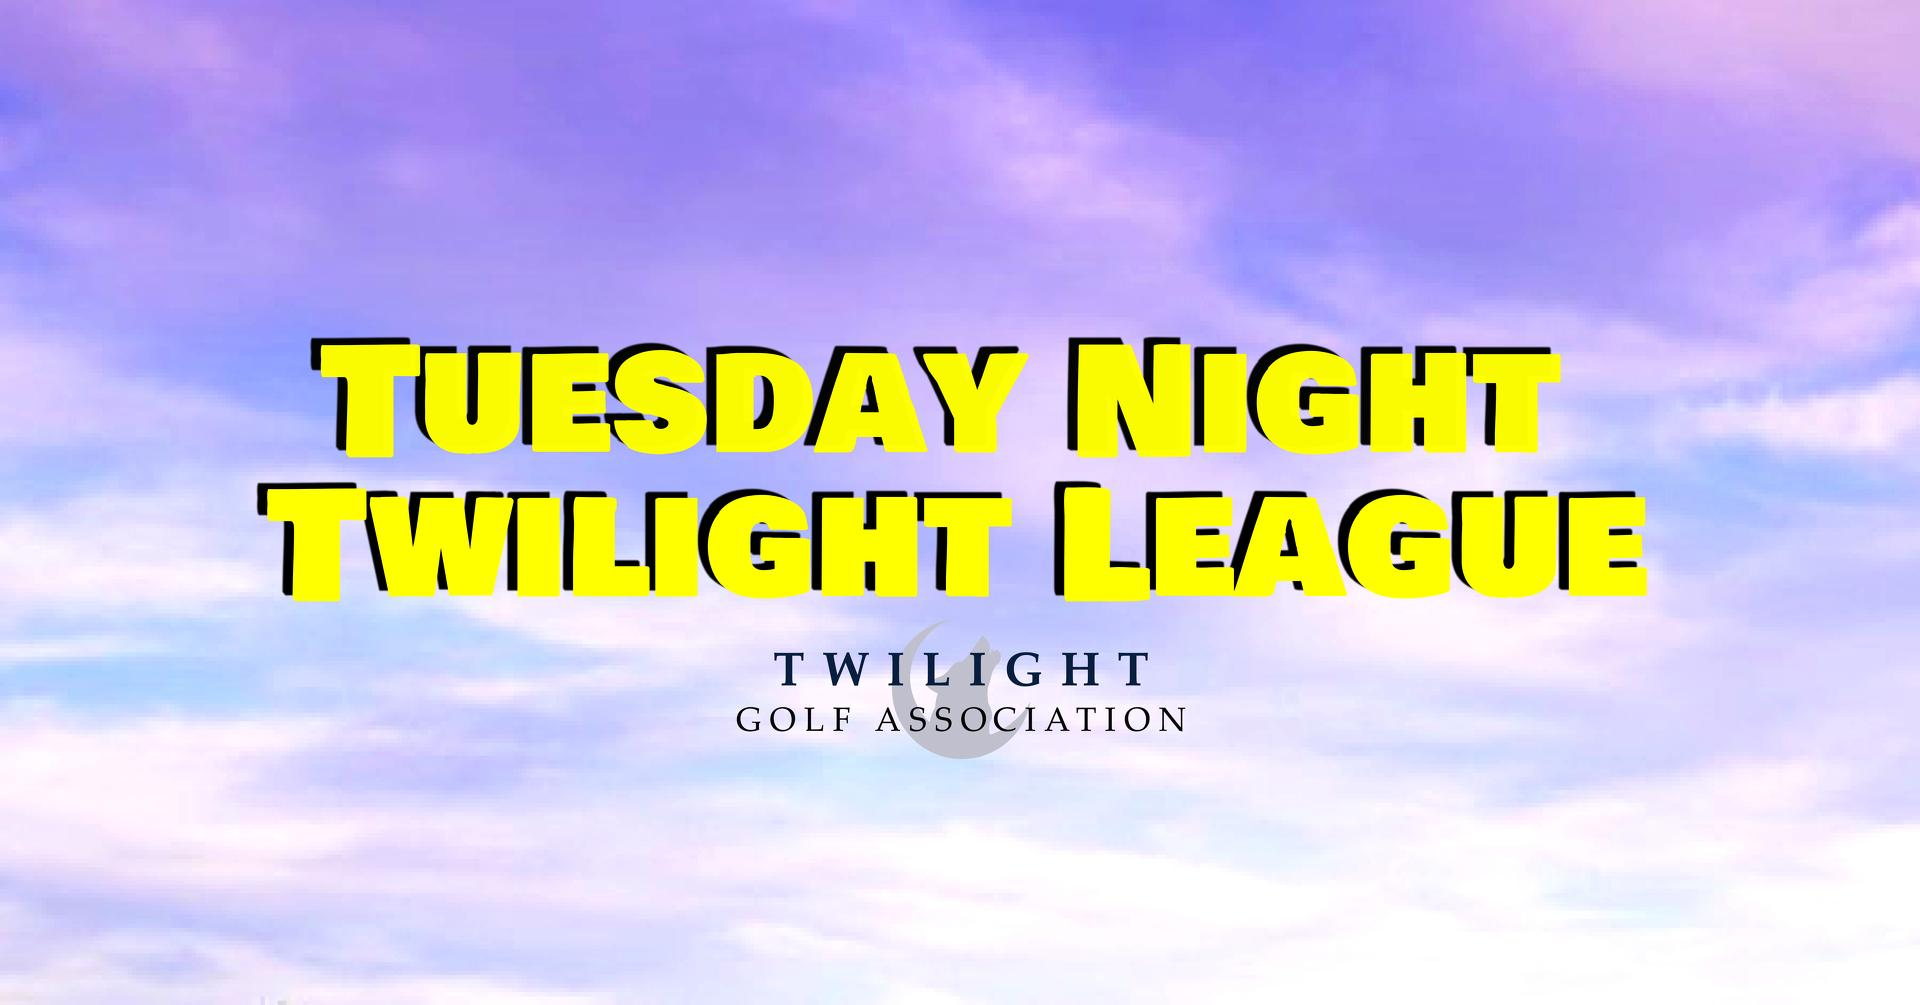 Tuesday Twilight League at Delcastle golf course